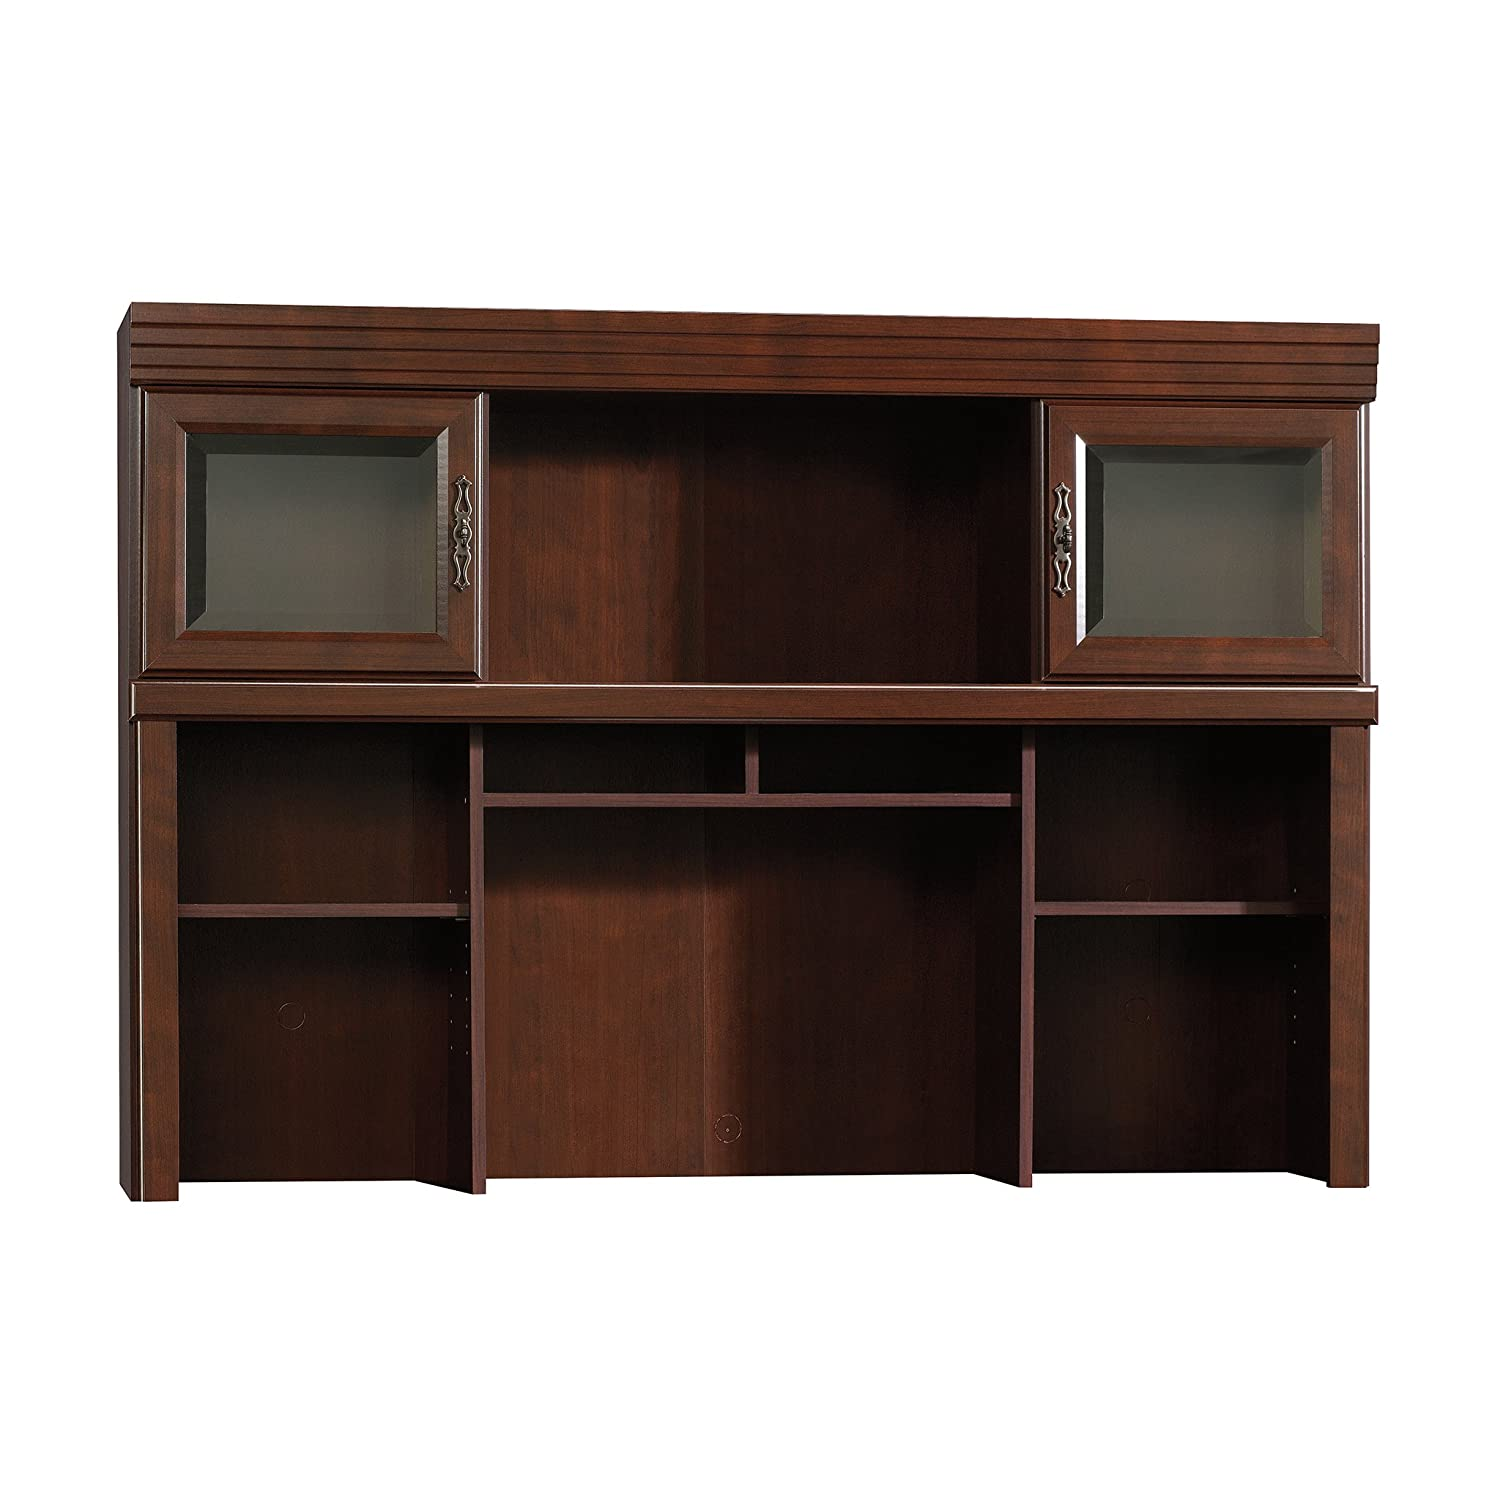 Sauder 404975 Heritage Hill Classic Cherry Hutch (Only) Sauder Woodworking Company